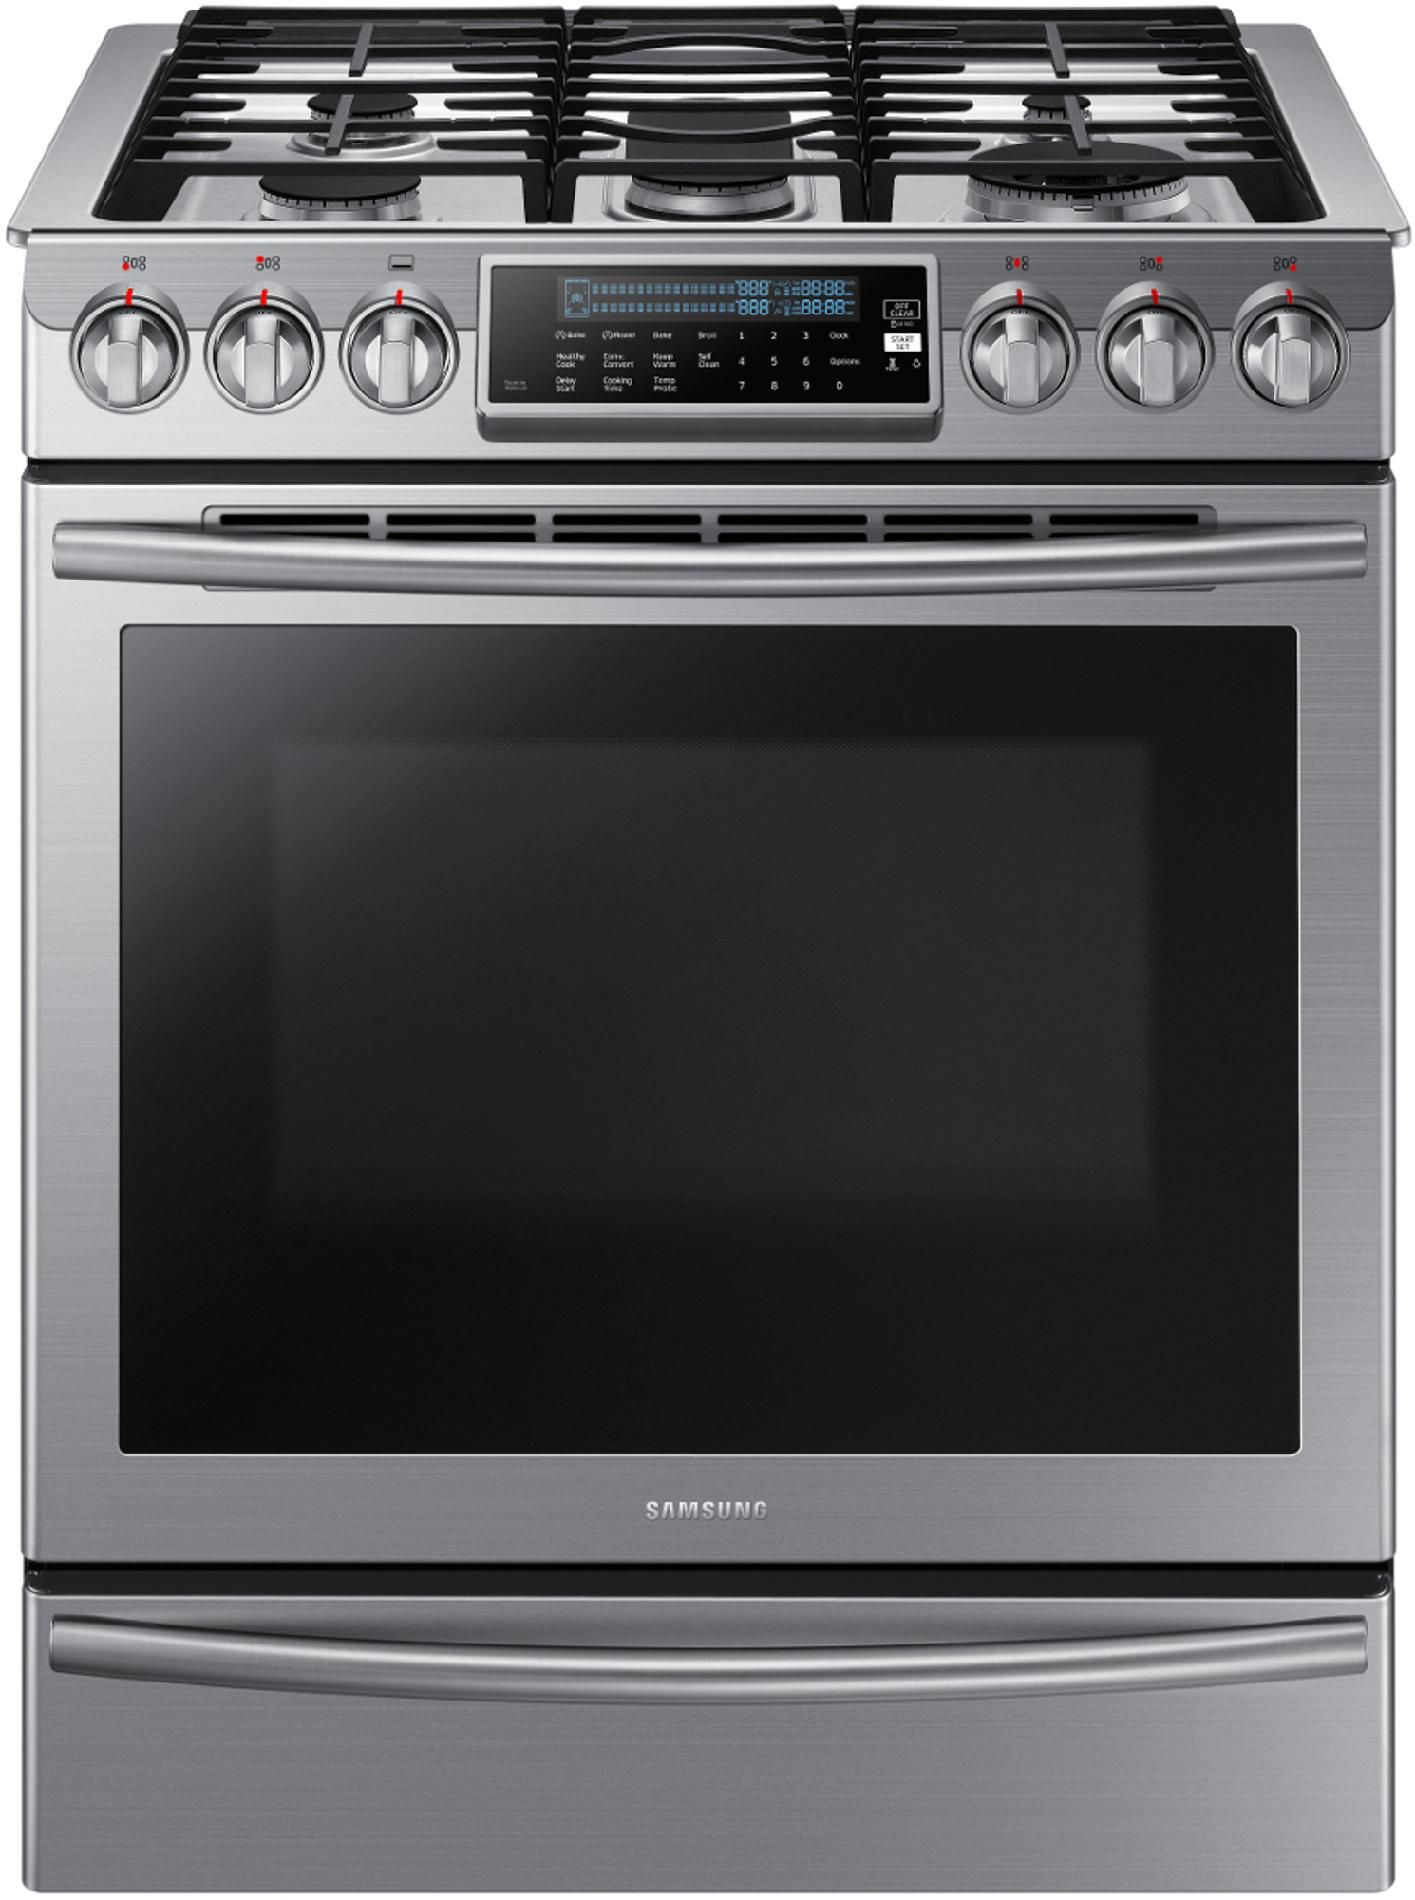 5 8 cu ft Slide In Gas Range w Intuitive Controls Stainless